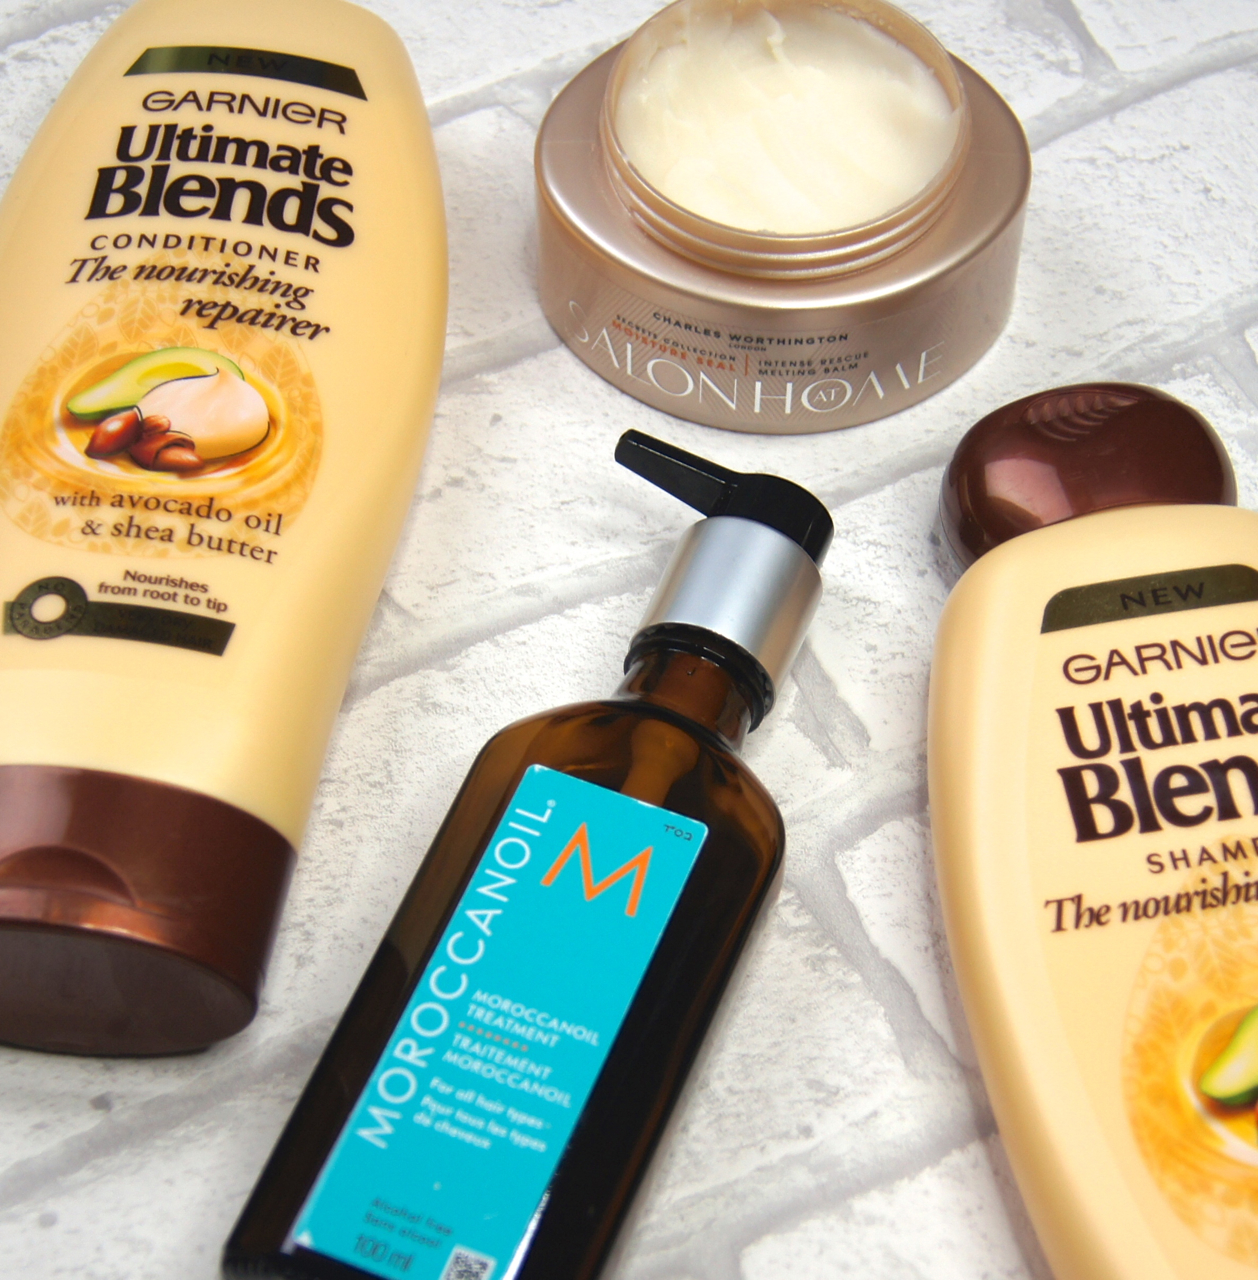 haircare favourites 2015 garnier shampoo conditioner charles worthing mask moroccanoil treatment review